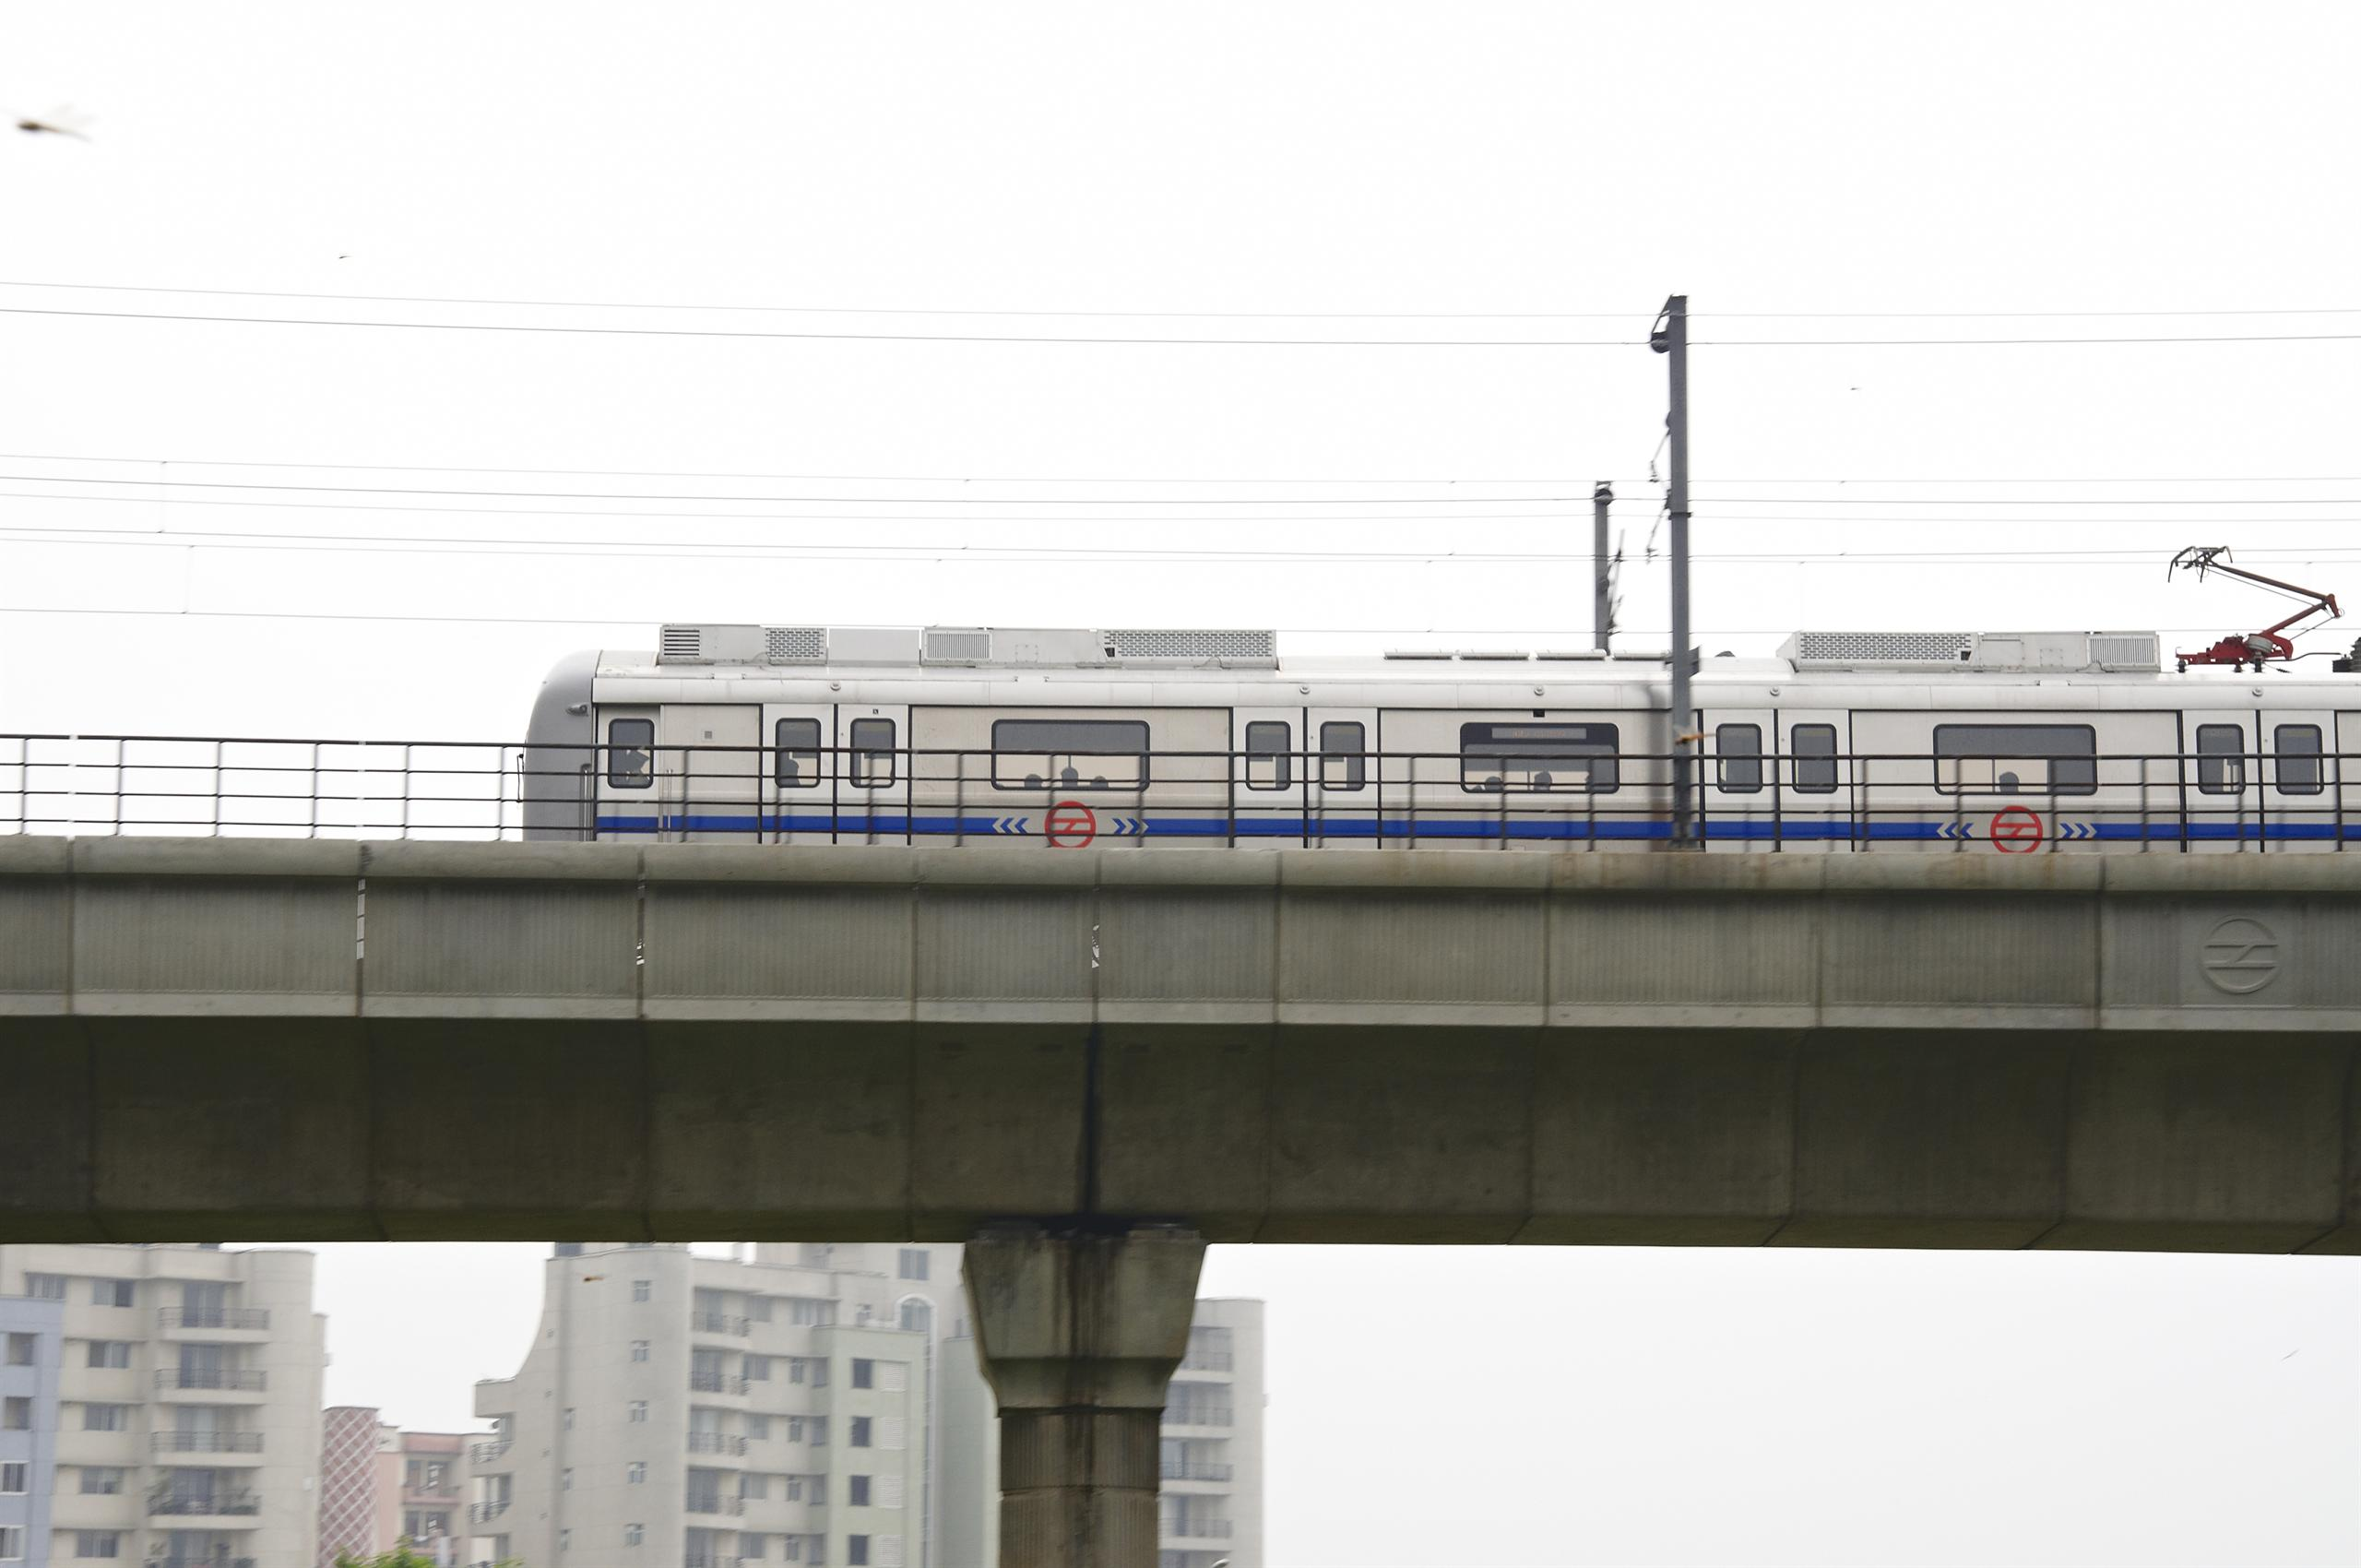 Metro train on elevated track